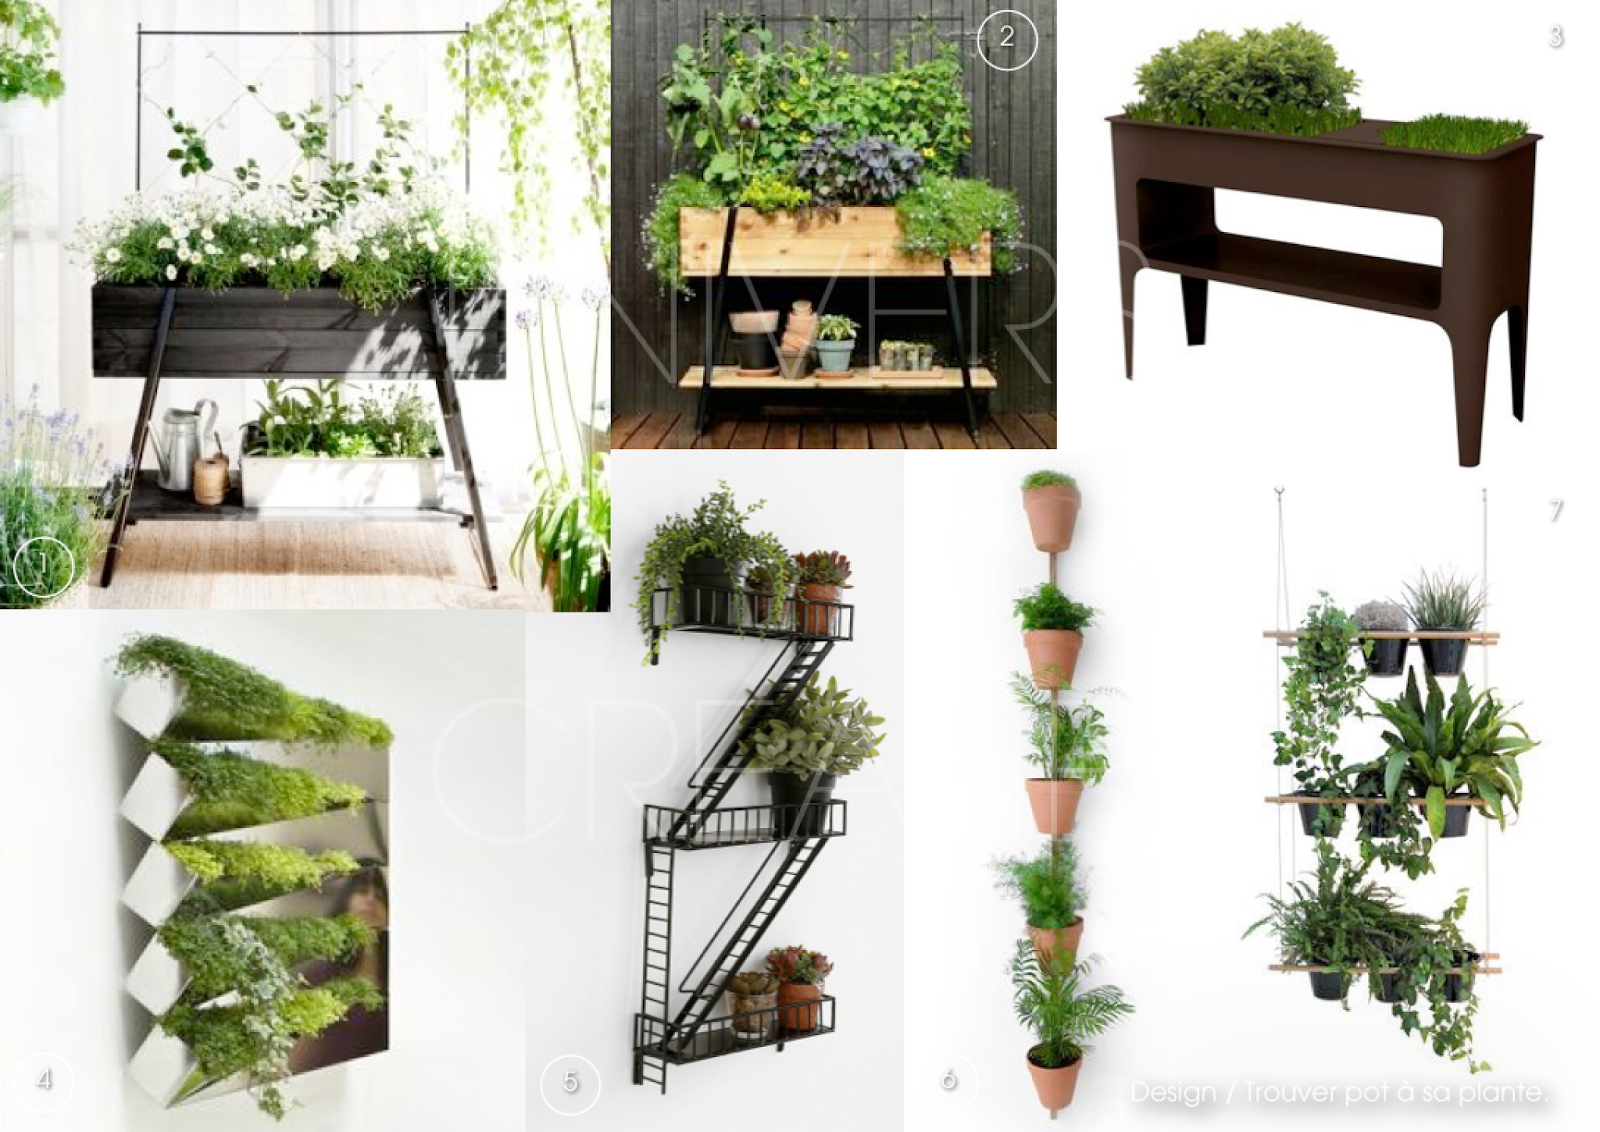 Univers creatifs mai 2014 for Pot plantes interieur